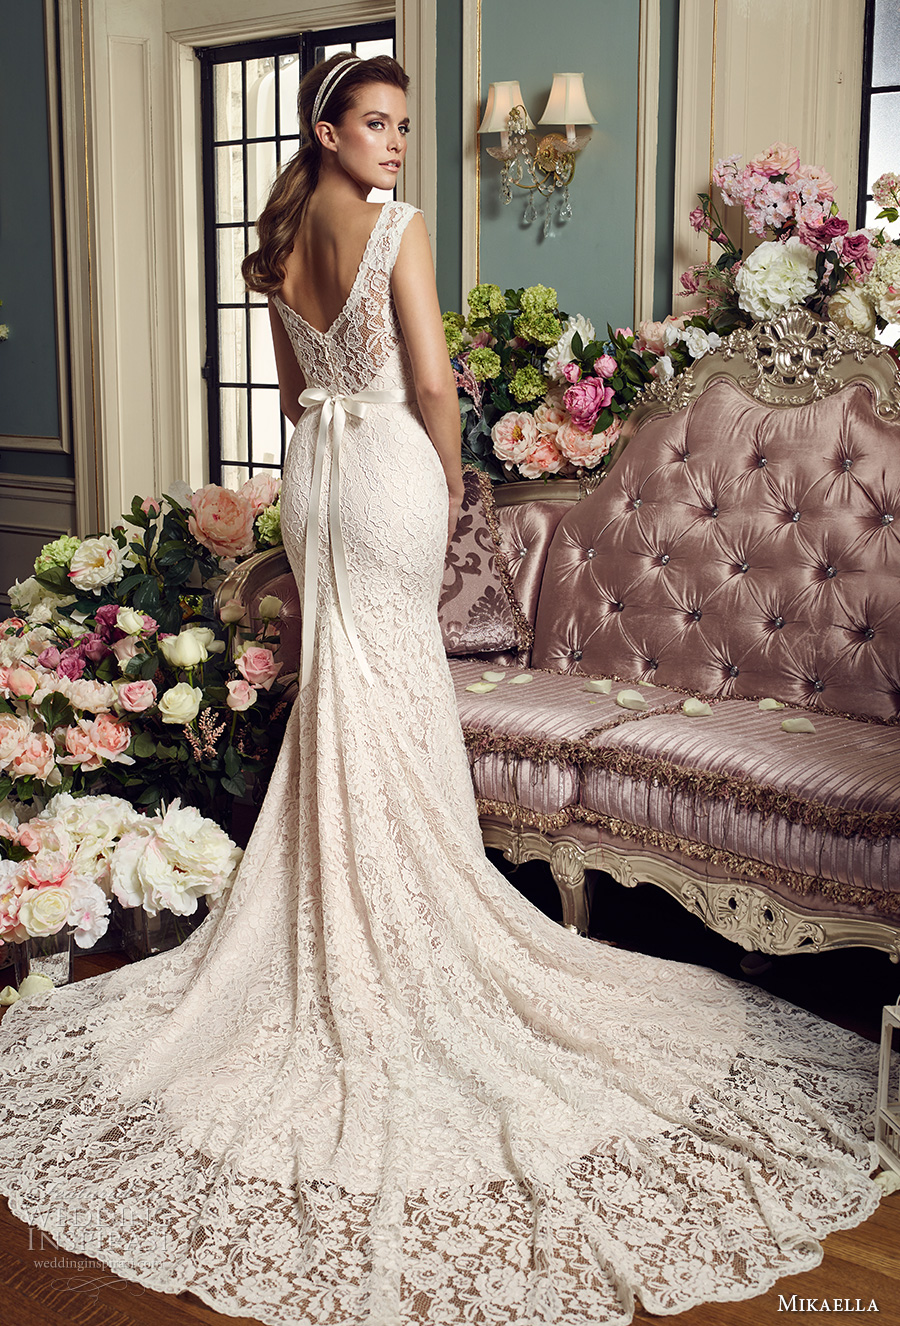 mikaella fall 2017 bridal sleeveless illusion bateau sweetheart neckline full embellishment elegant fit and flare wedding dress v back chapel train (2157) bv